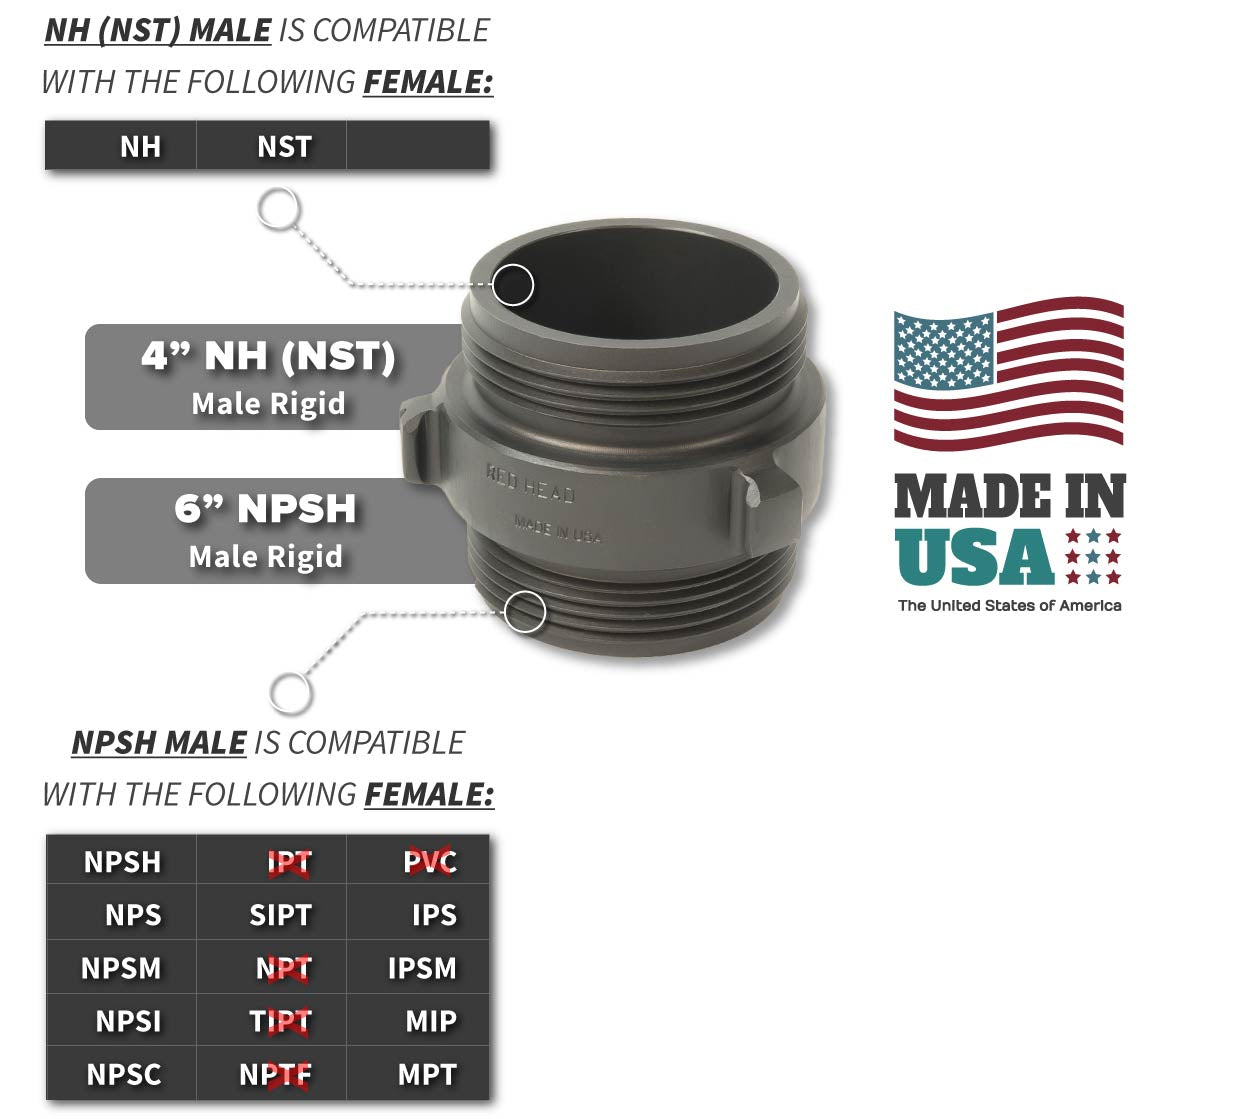 4 Inch NH-NST Male x 6 Inch NPSH Male Compatibility Thread Chart